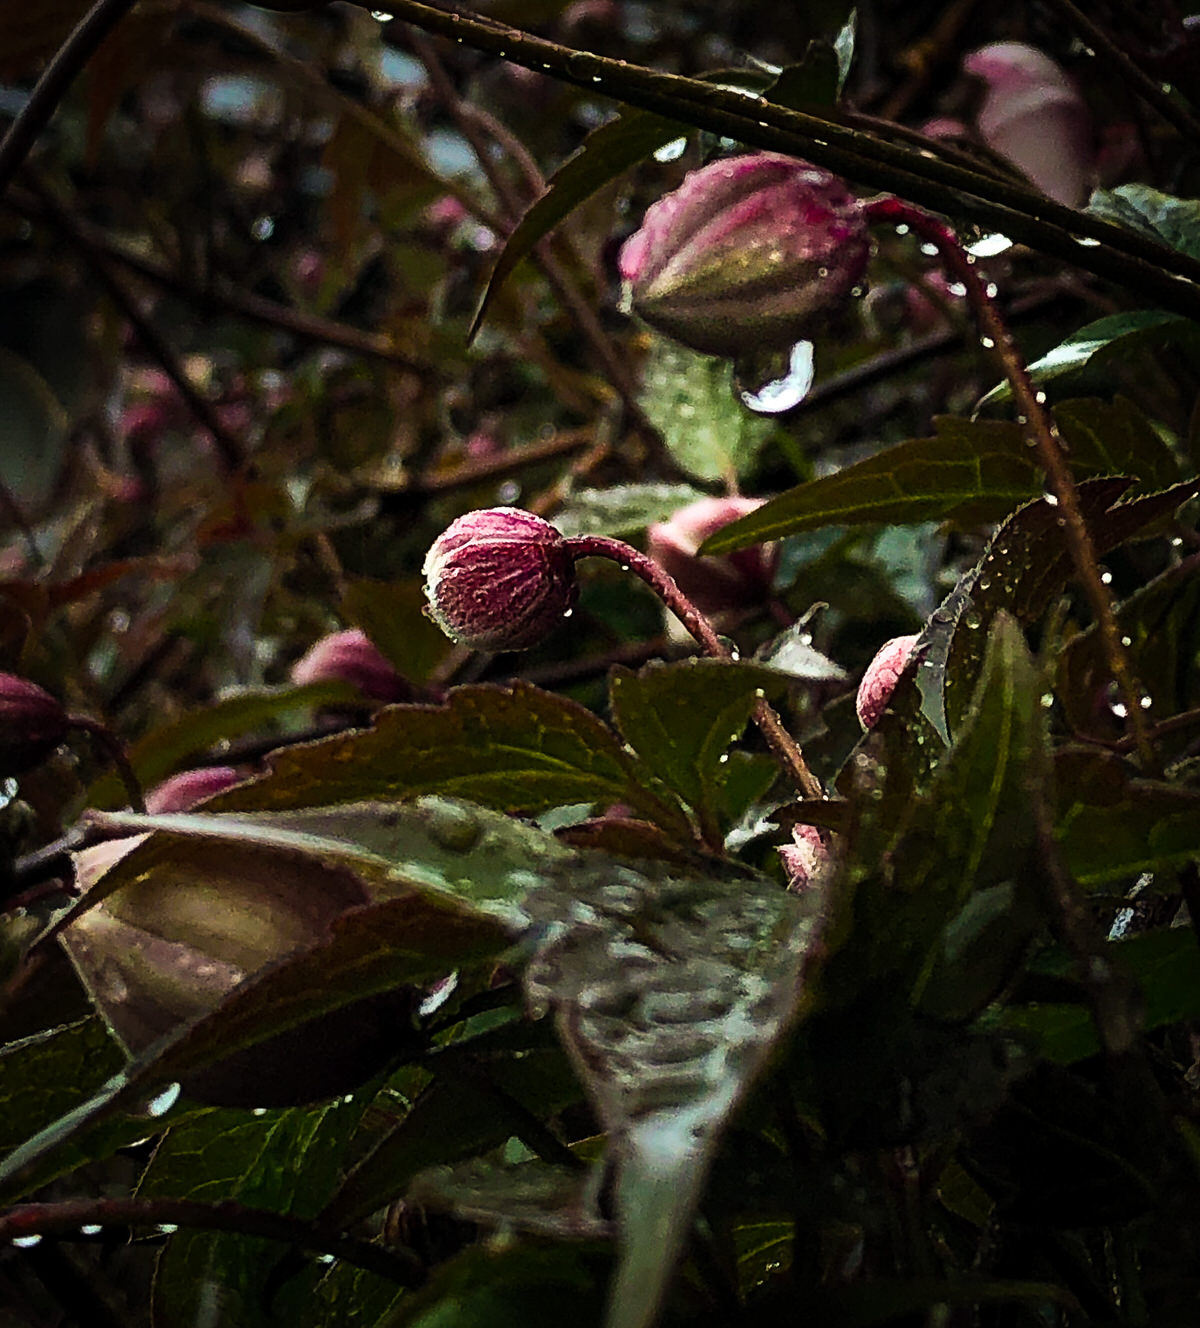 Clematis buds in the rain